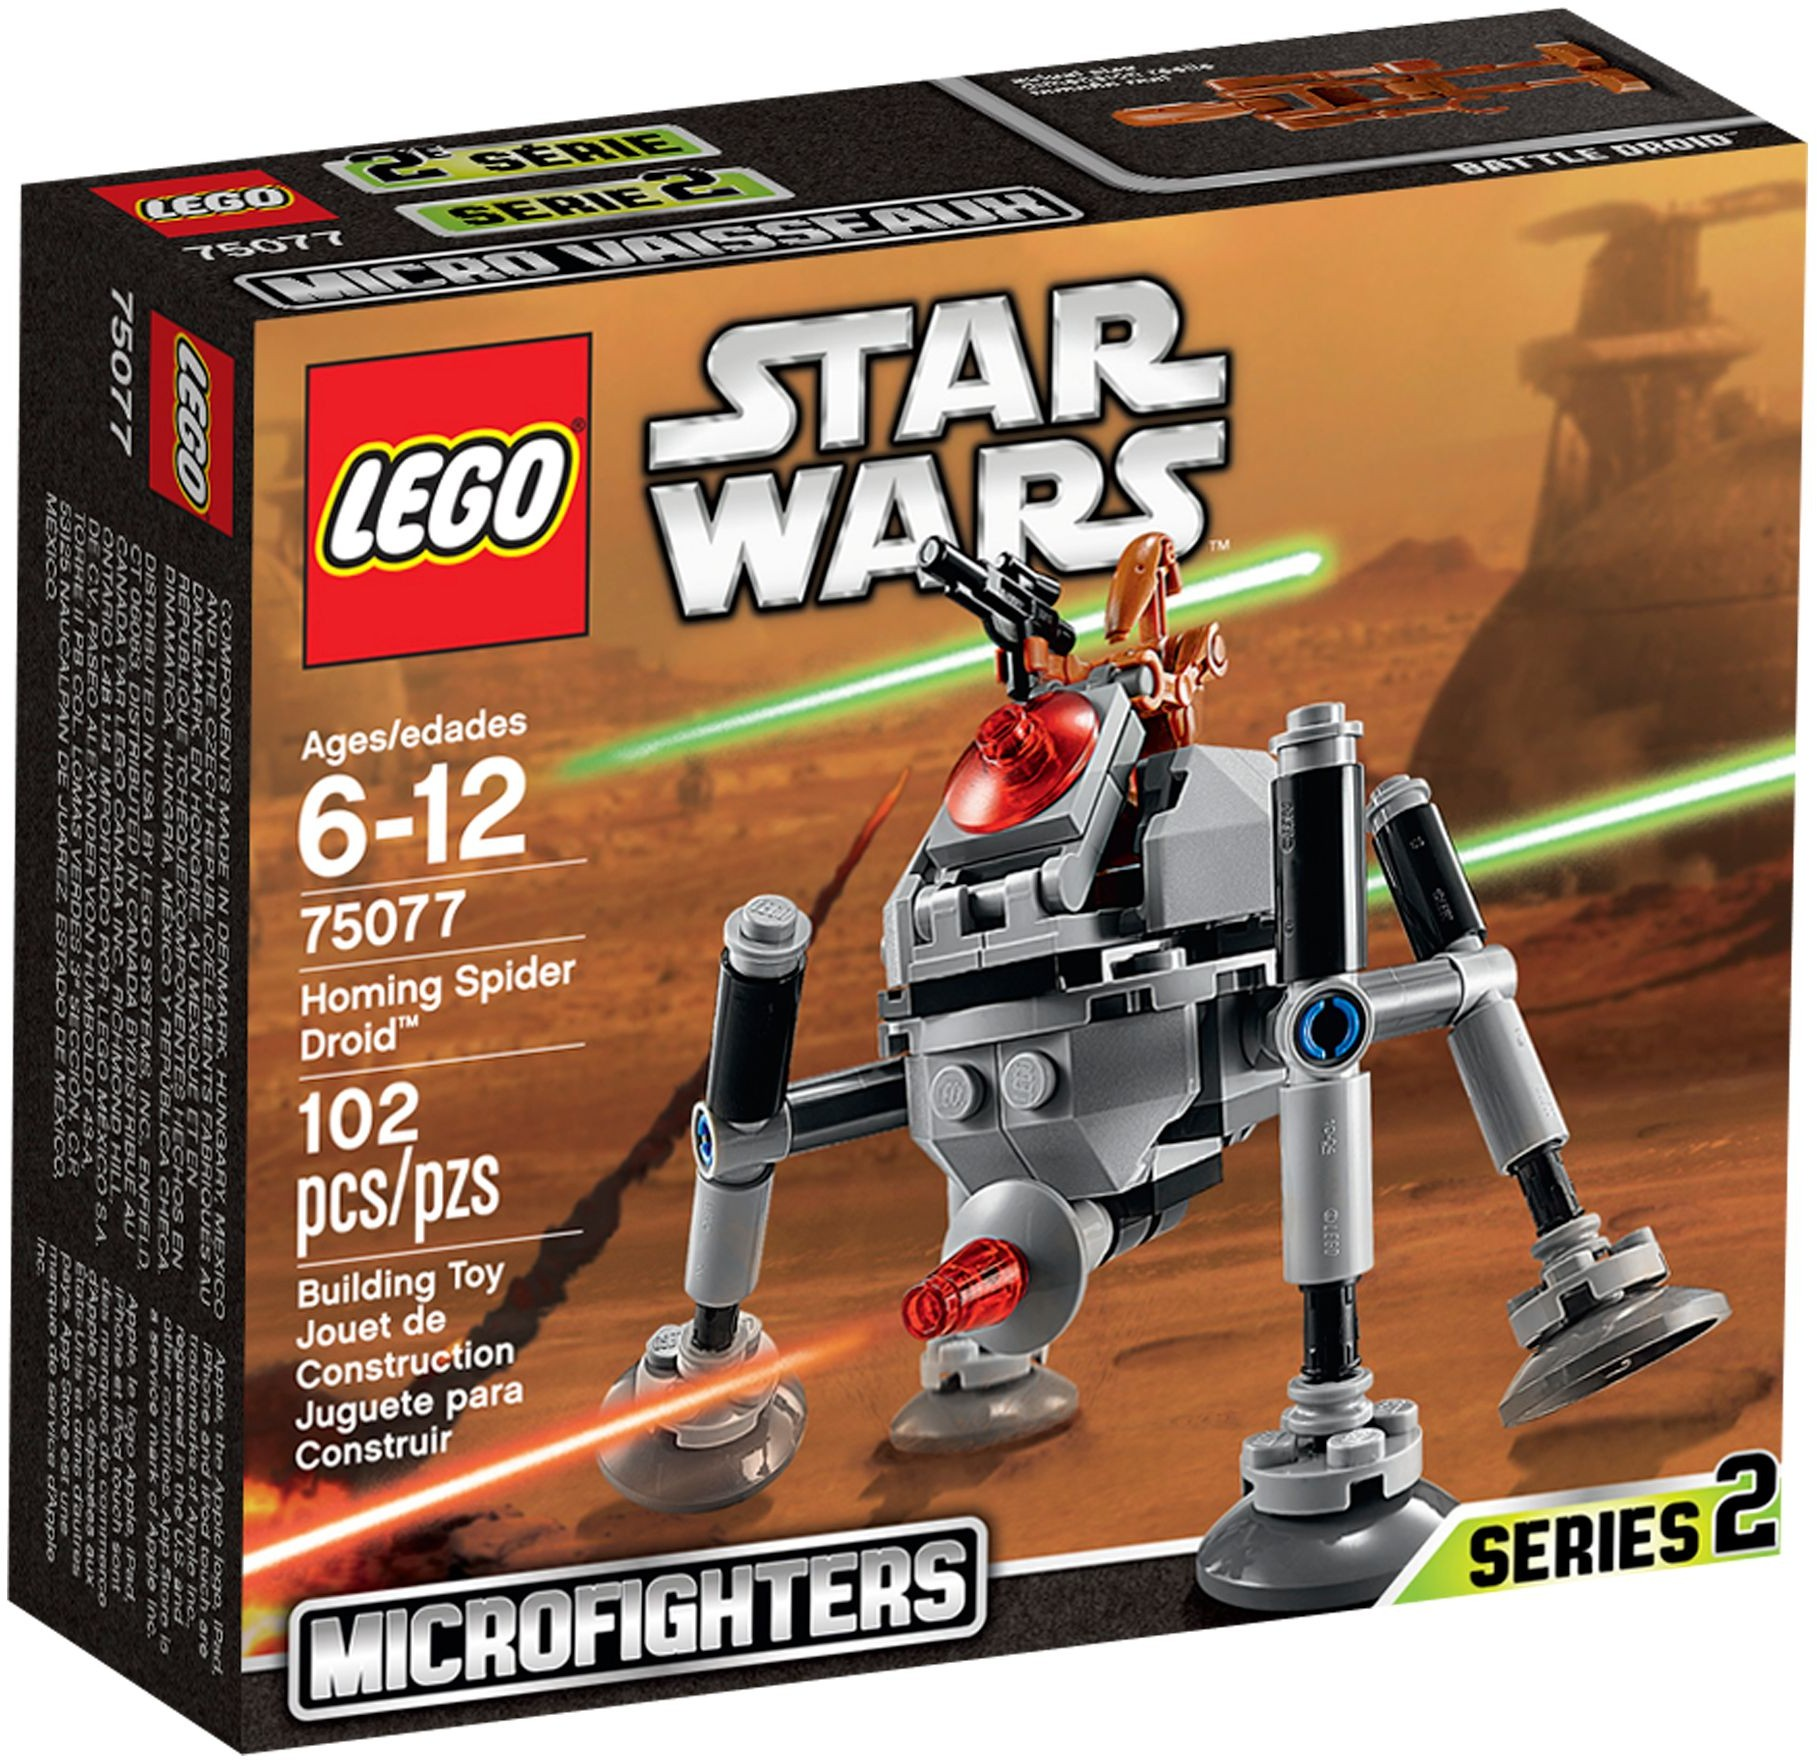 LEGO 75077 - Star Wars - Homing Spider Droid